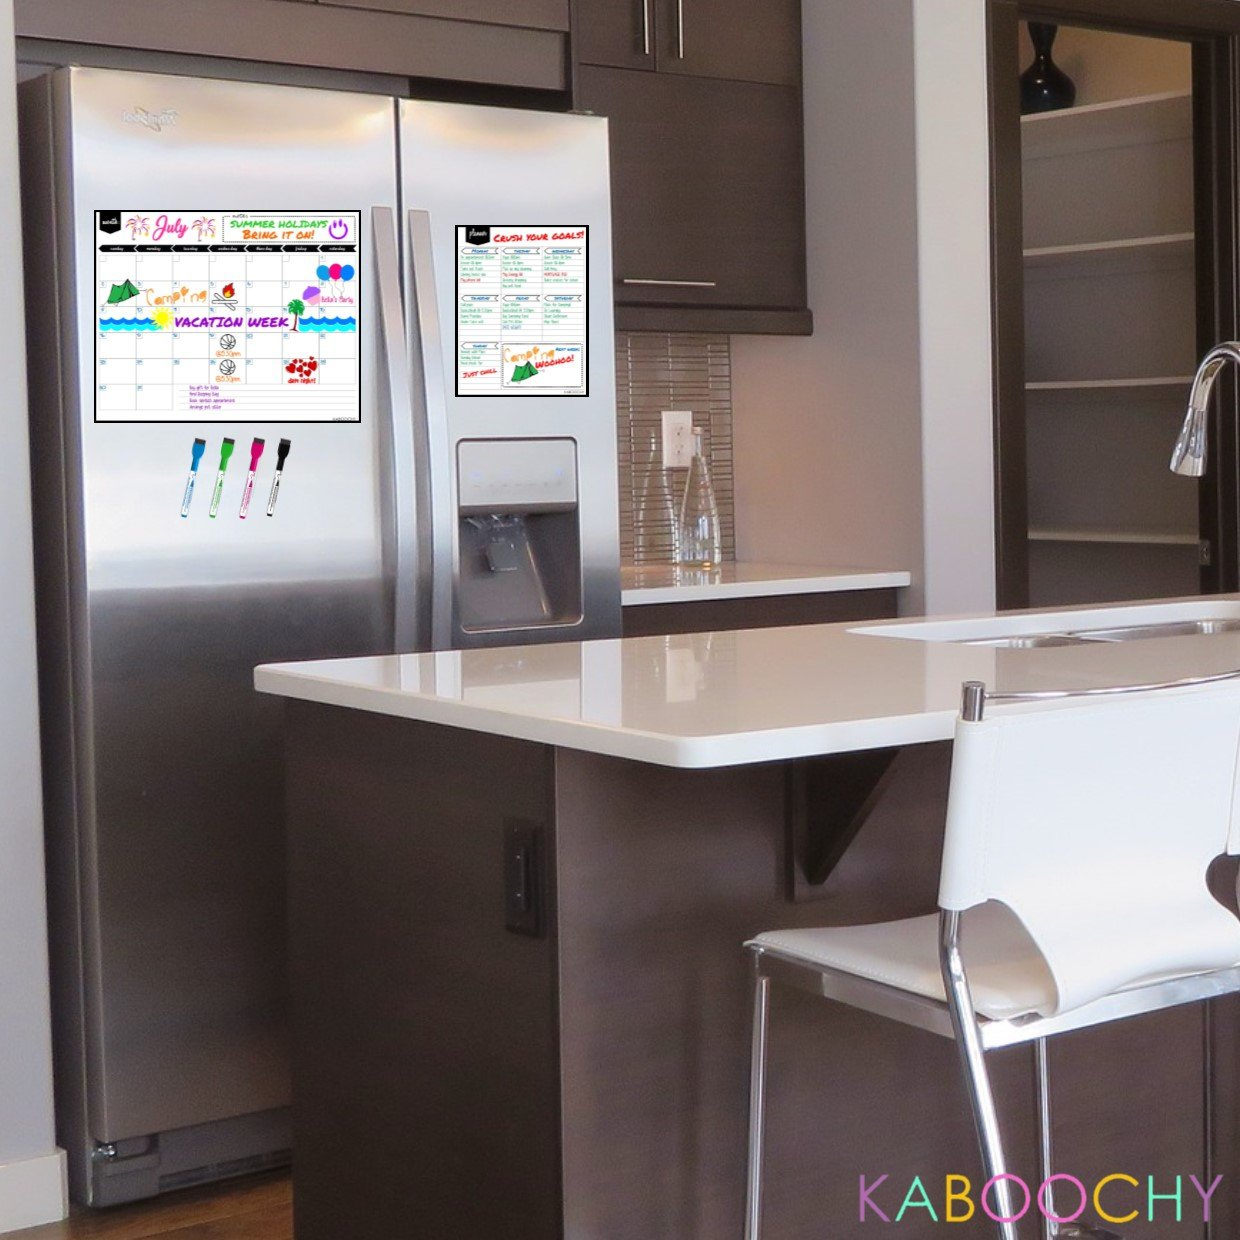 """Magnetic Dry Erase Monthly Fridge Calendar 17''x13'' with Multi-Purpose Planner 8.5""""x11"""" Plus 4 Bonus Markers. Reusable Refrigerator Planner/Erasable Whiteboard Kitchen Grocery List by KABOOCHY by KABOOCHY (Image #3)"""